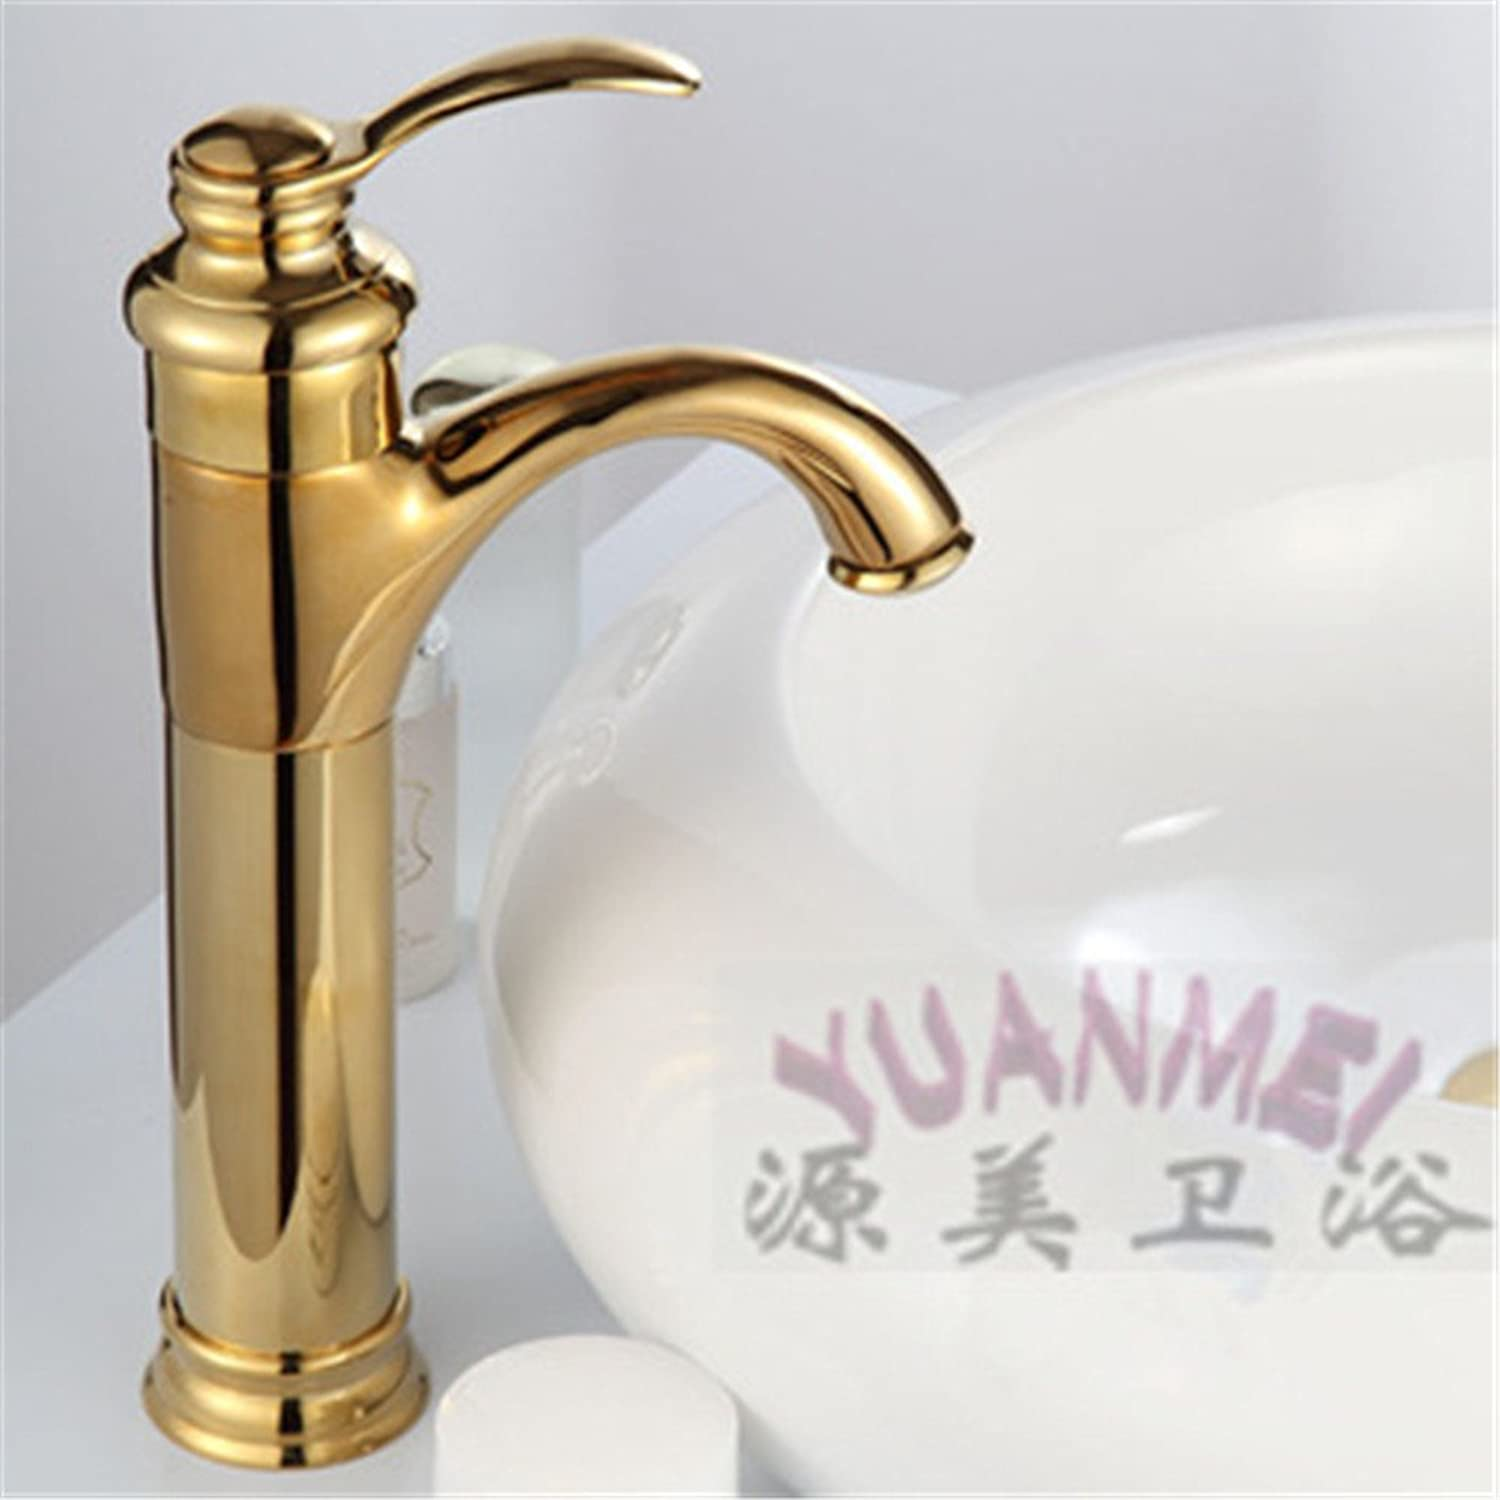 Commercial Single Lever Pull Down Kitchen Sink Faucet Brass Constructed Polished gold-Plated Antique Sanitary Ware European Antique Faucet Copper Hot and Cold Faucet Kitchen Faucet